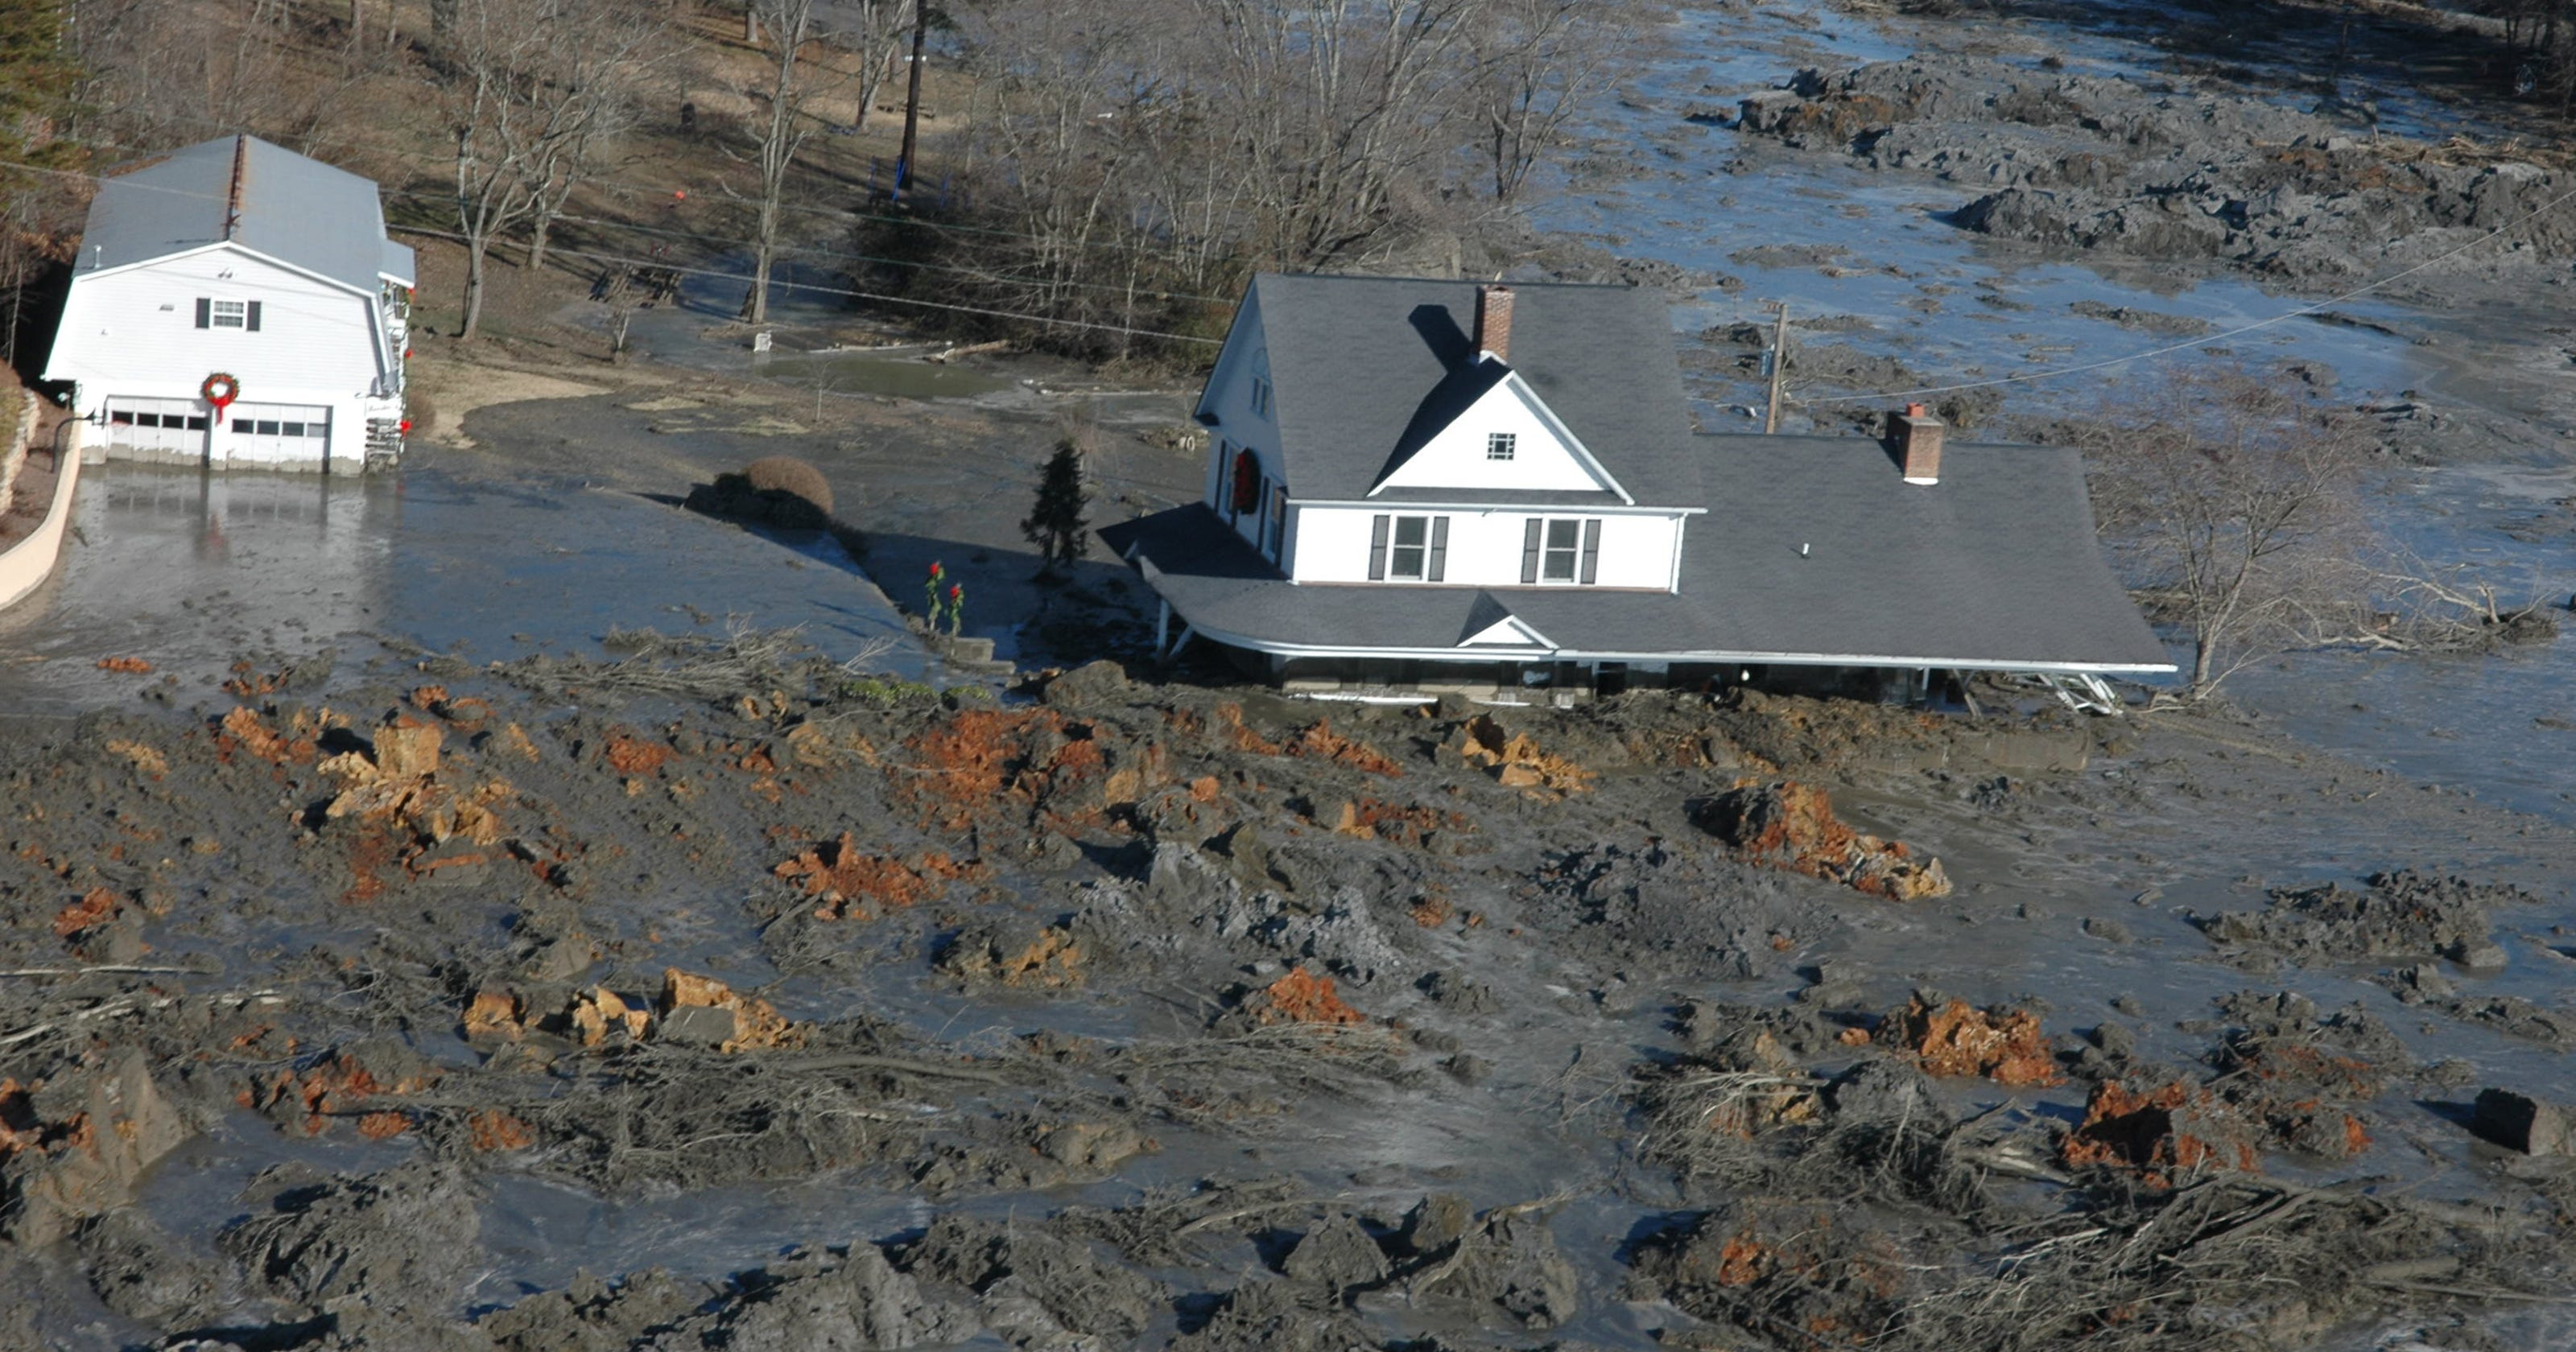 From the archives: The effects of the TVA coal ash spill